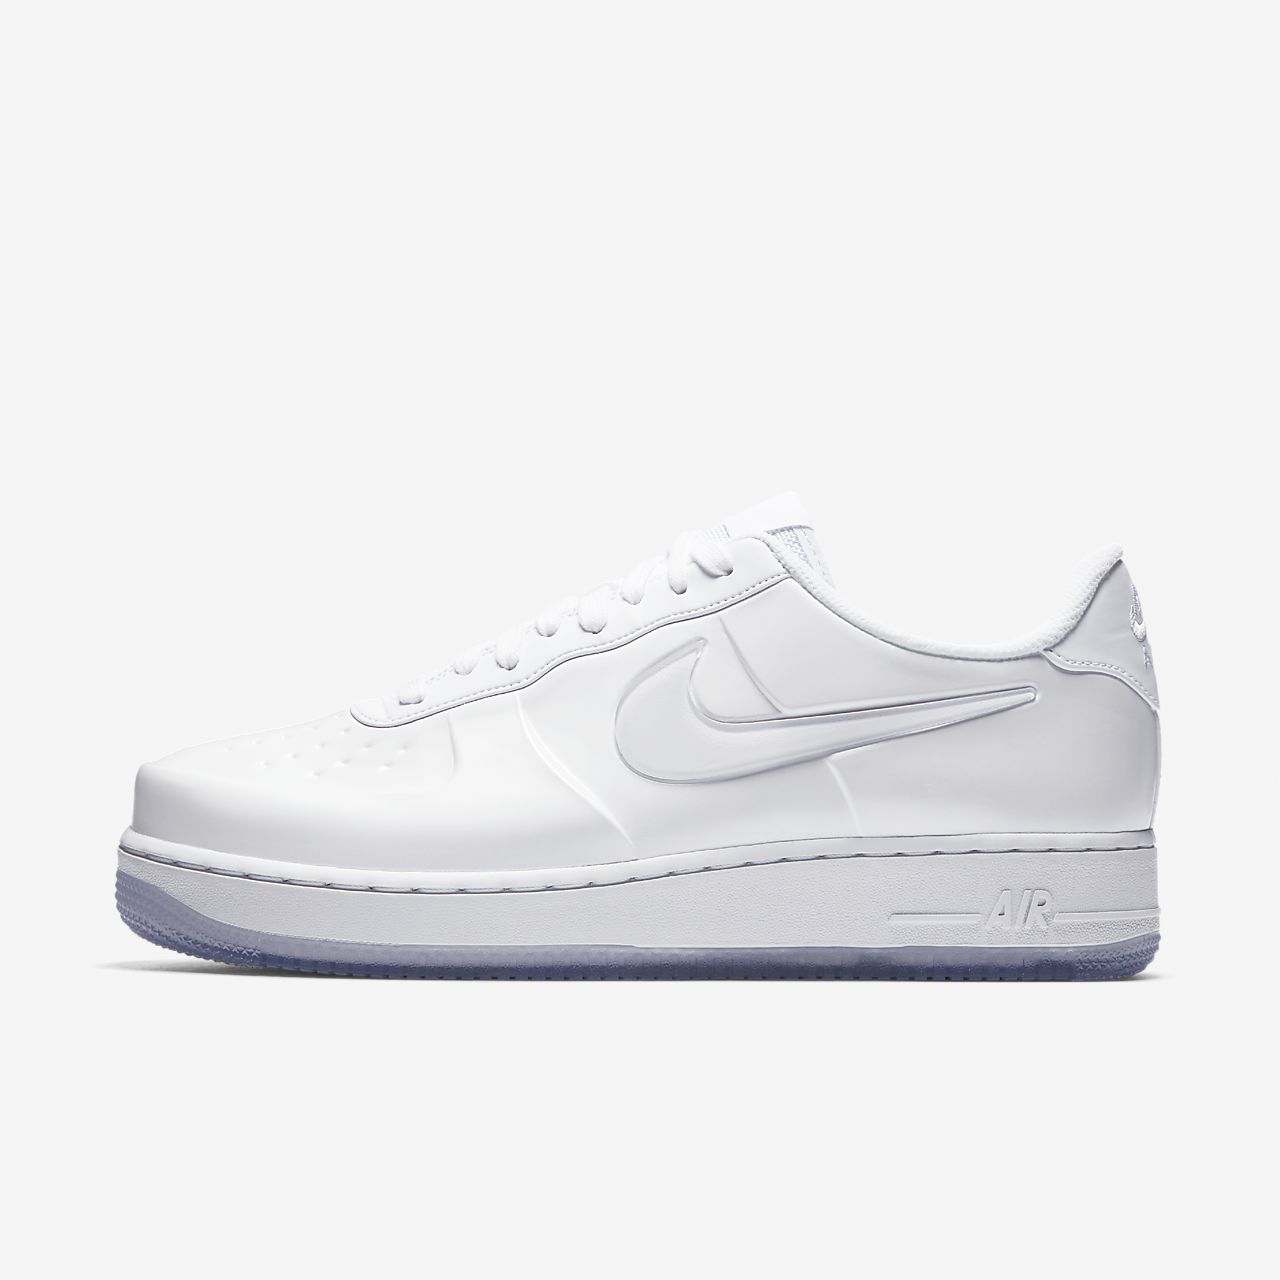 low priced 18e85 1cbf6 ... Chaussure Nike Air Force 1 Foamposite Pro Cup pour Homme